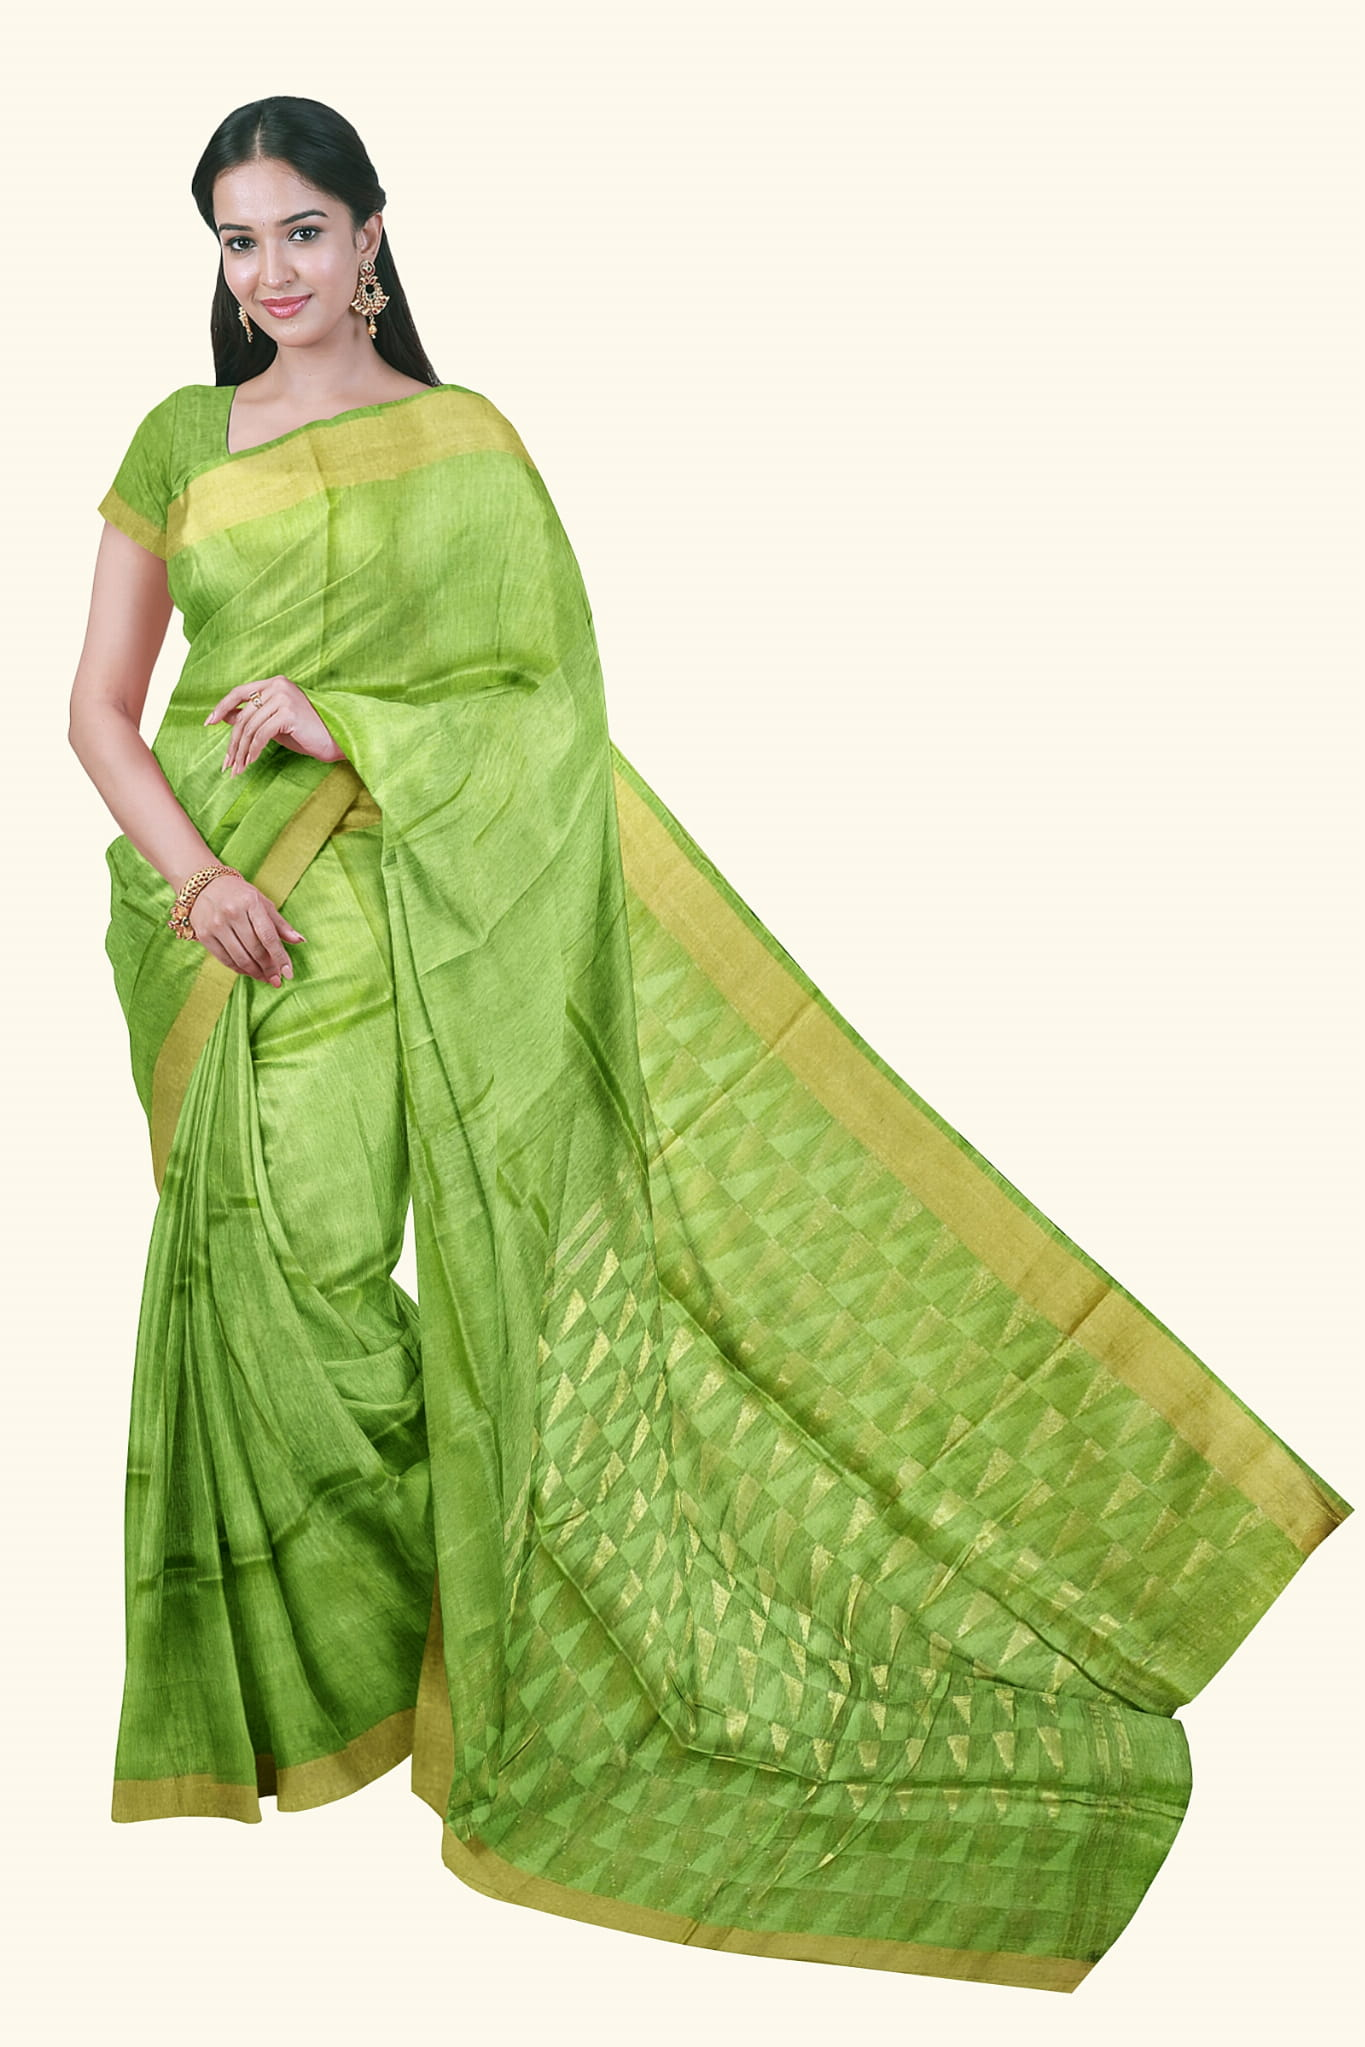 Lenin Silk Saree Light Green